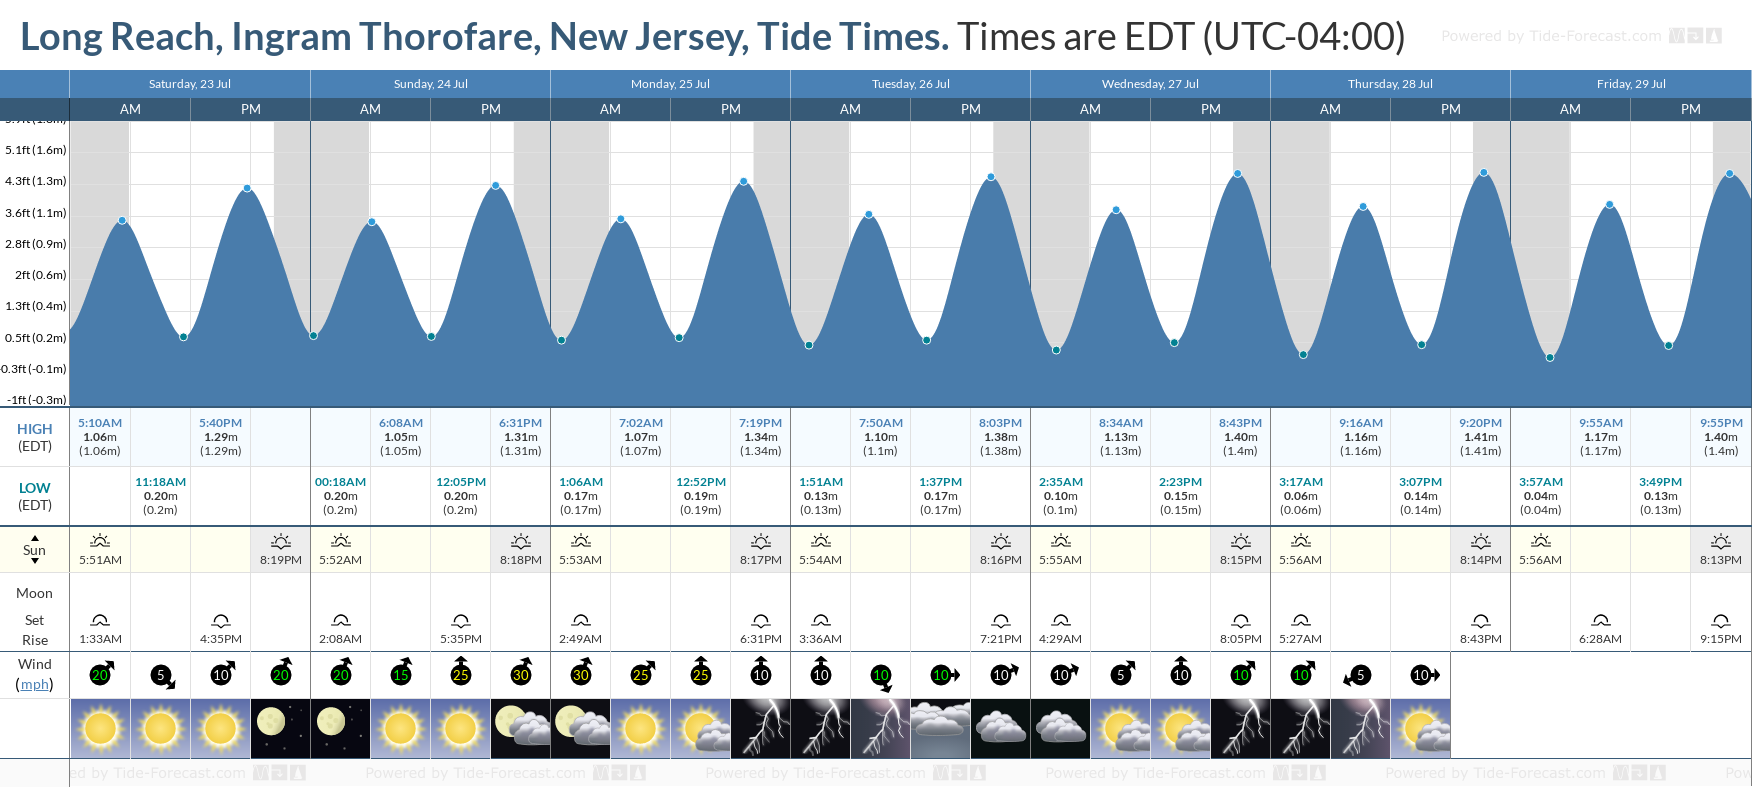 Long Reach, Ingram Thorofare, New Jersey Tide Chart including high and low tide tide times for the next 7 days